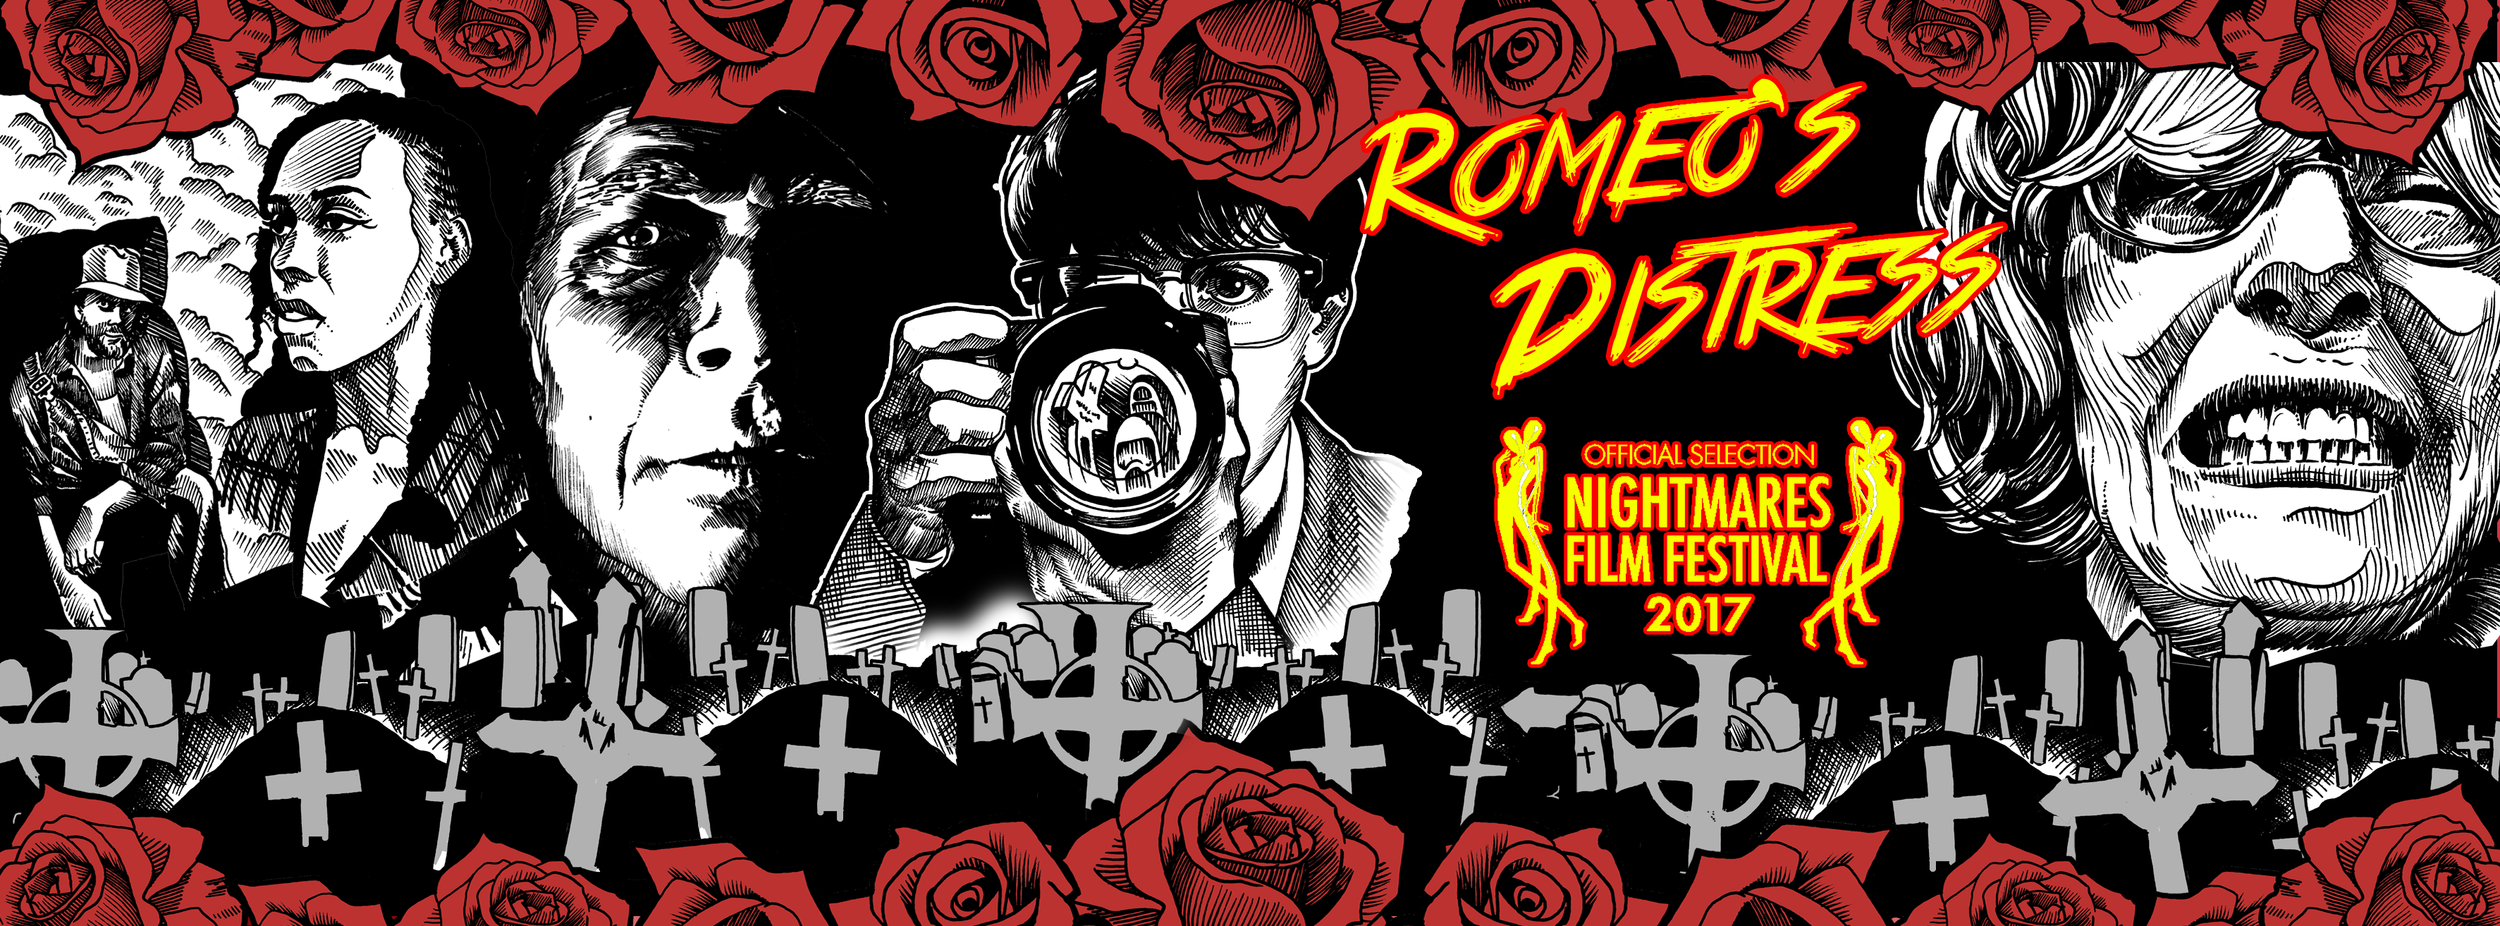 """Romeo's Distress,"" named after the    Christian Death    song by    Rozz Williams    and    Rikk Agnew    is a weird, gothic noir horror-thriller that tells a story of a boy name James, his unrequited love for a girl named Jane, and her father's sadistic (yet dutiful) response to it all."